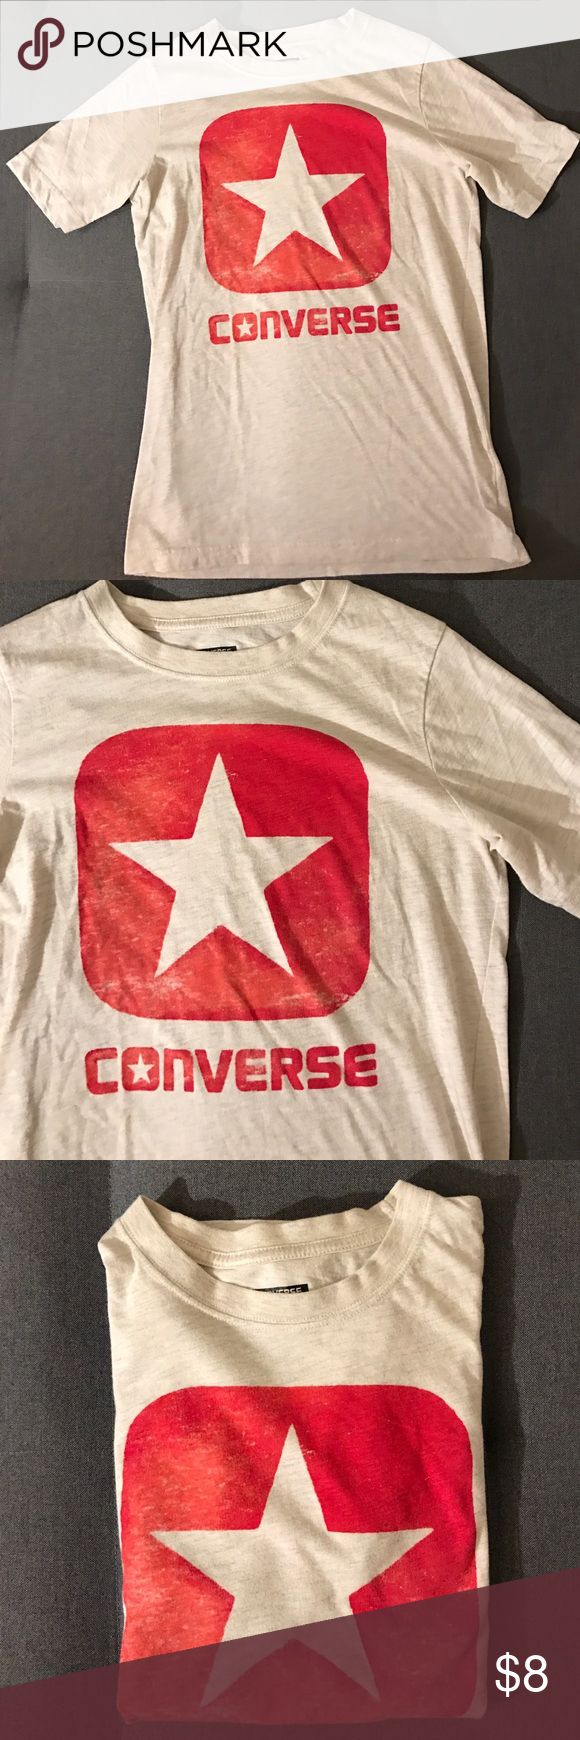 Red box star converse tee Red and off white box star converse short sleeve tee! Converse Shirts & Tops Tees - Short Sleeve